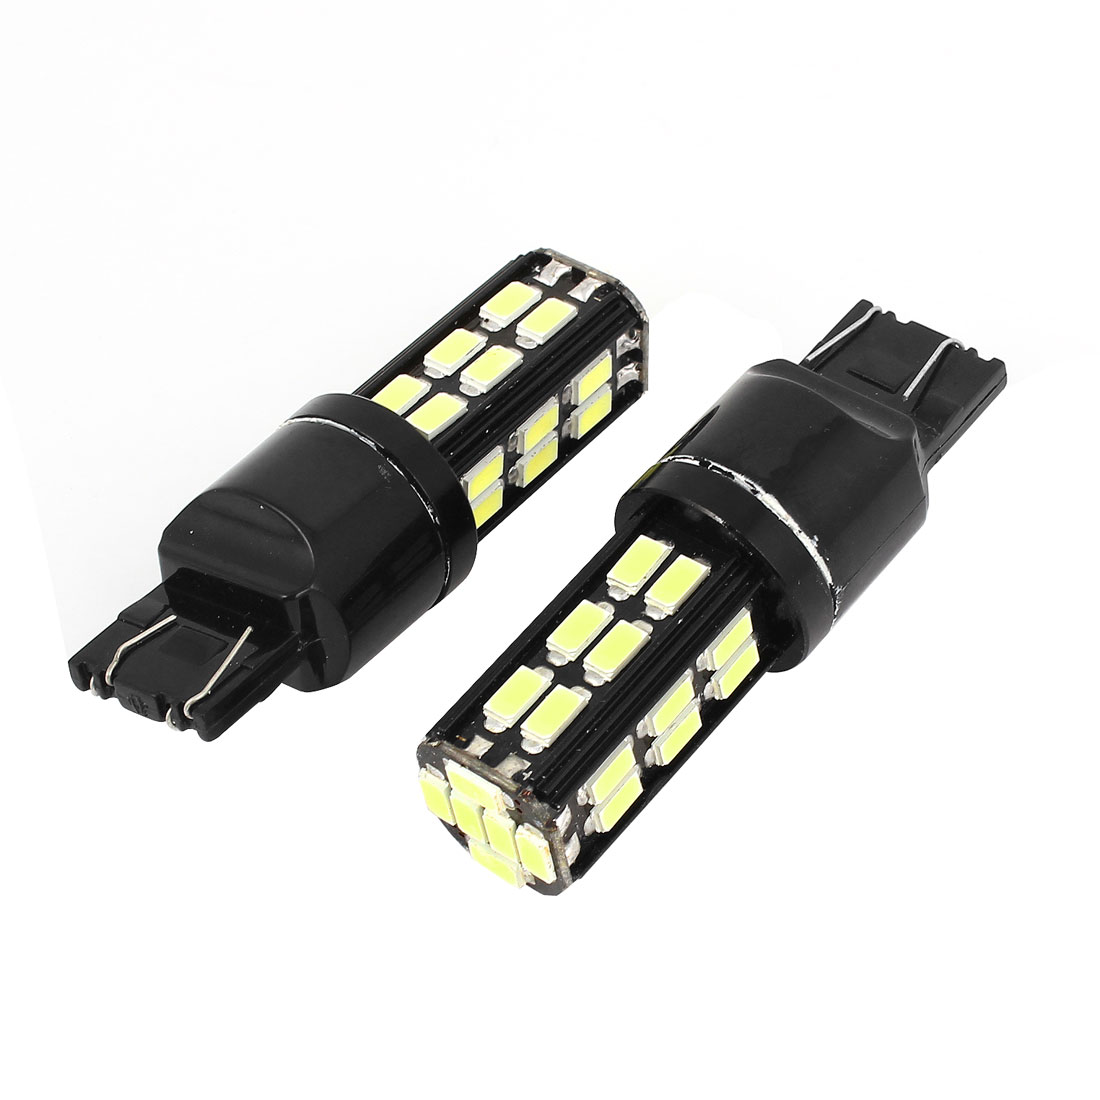 2 Pcs White 7443 30 5630 SMD LED Auto Marker Light Signal Lamp Turning Bulb 12V